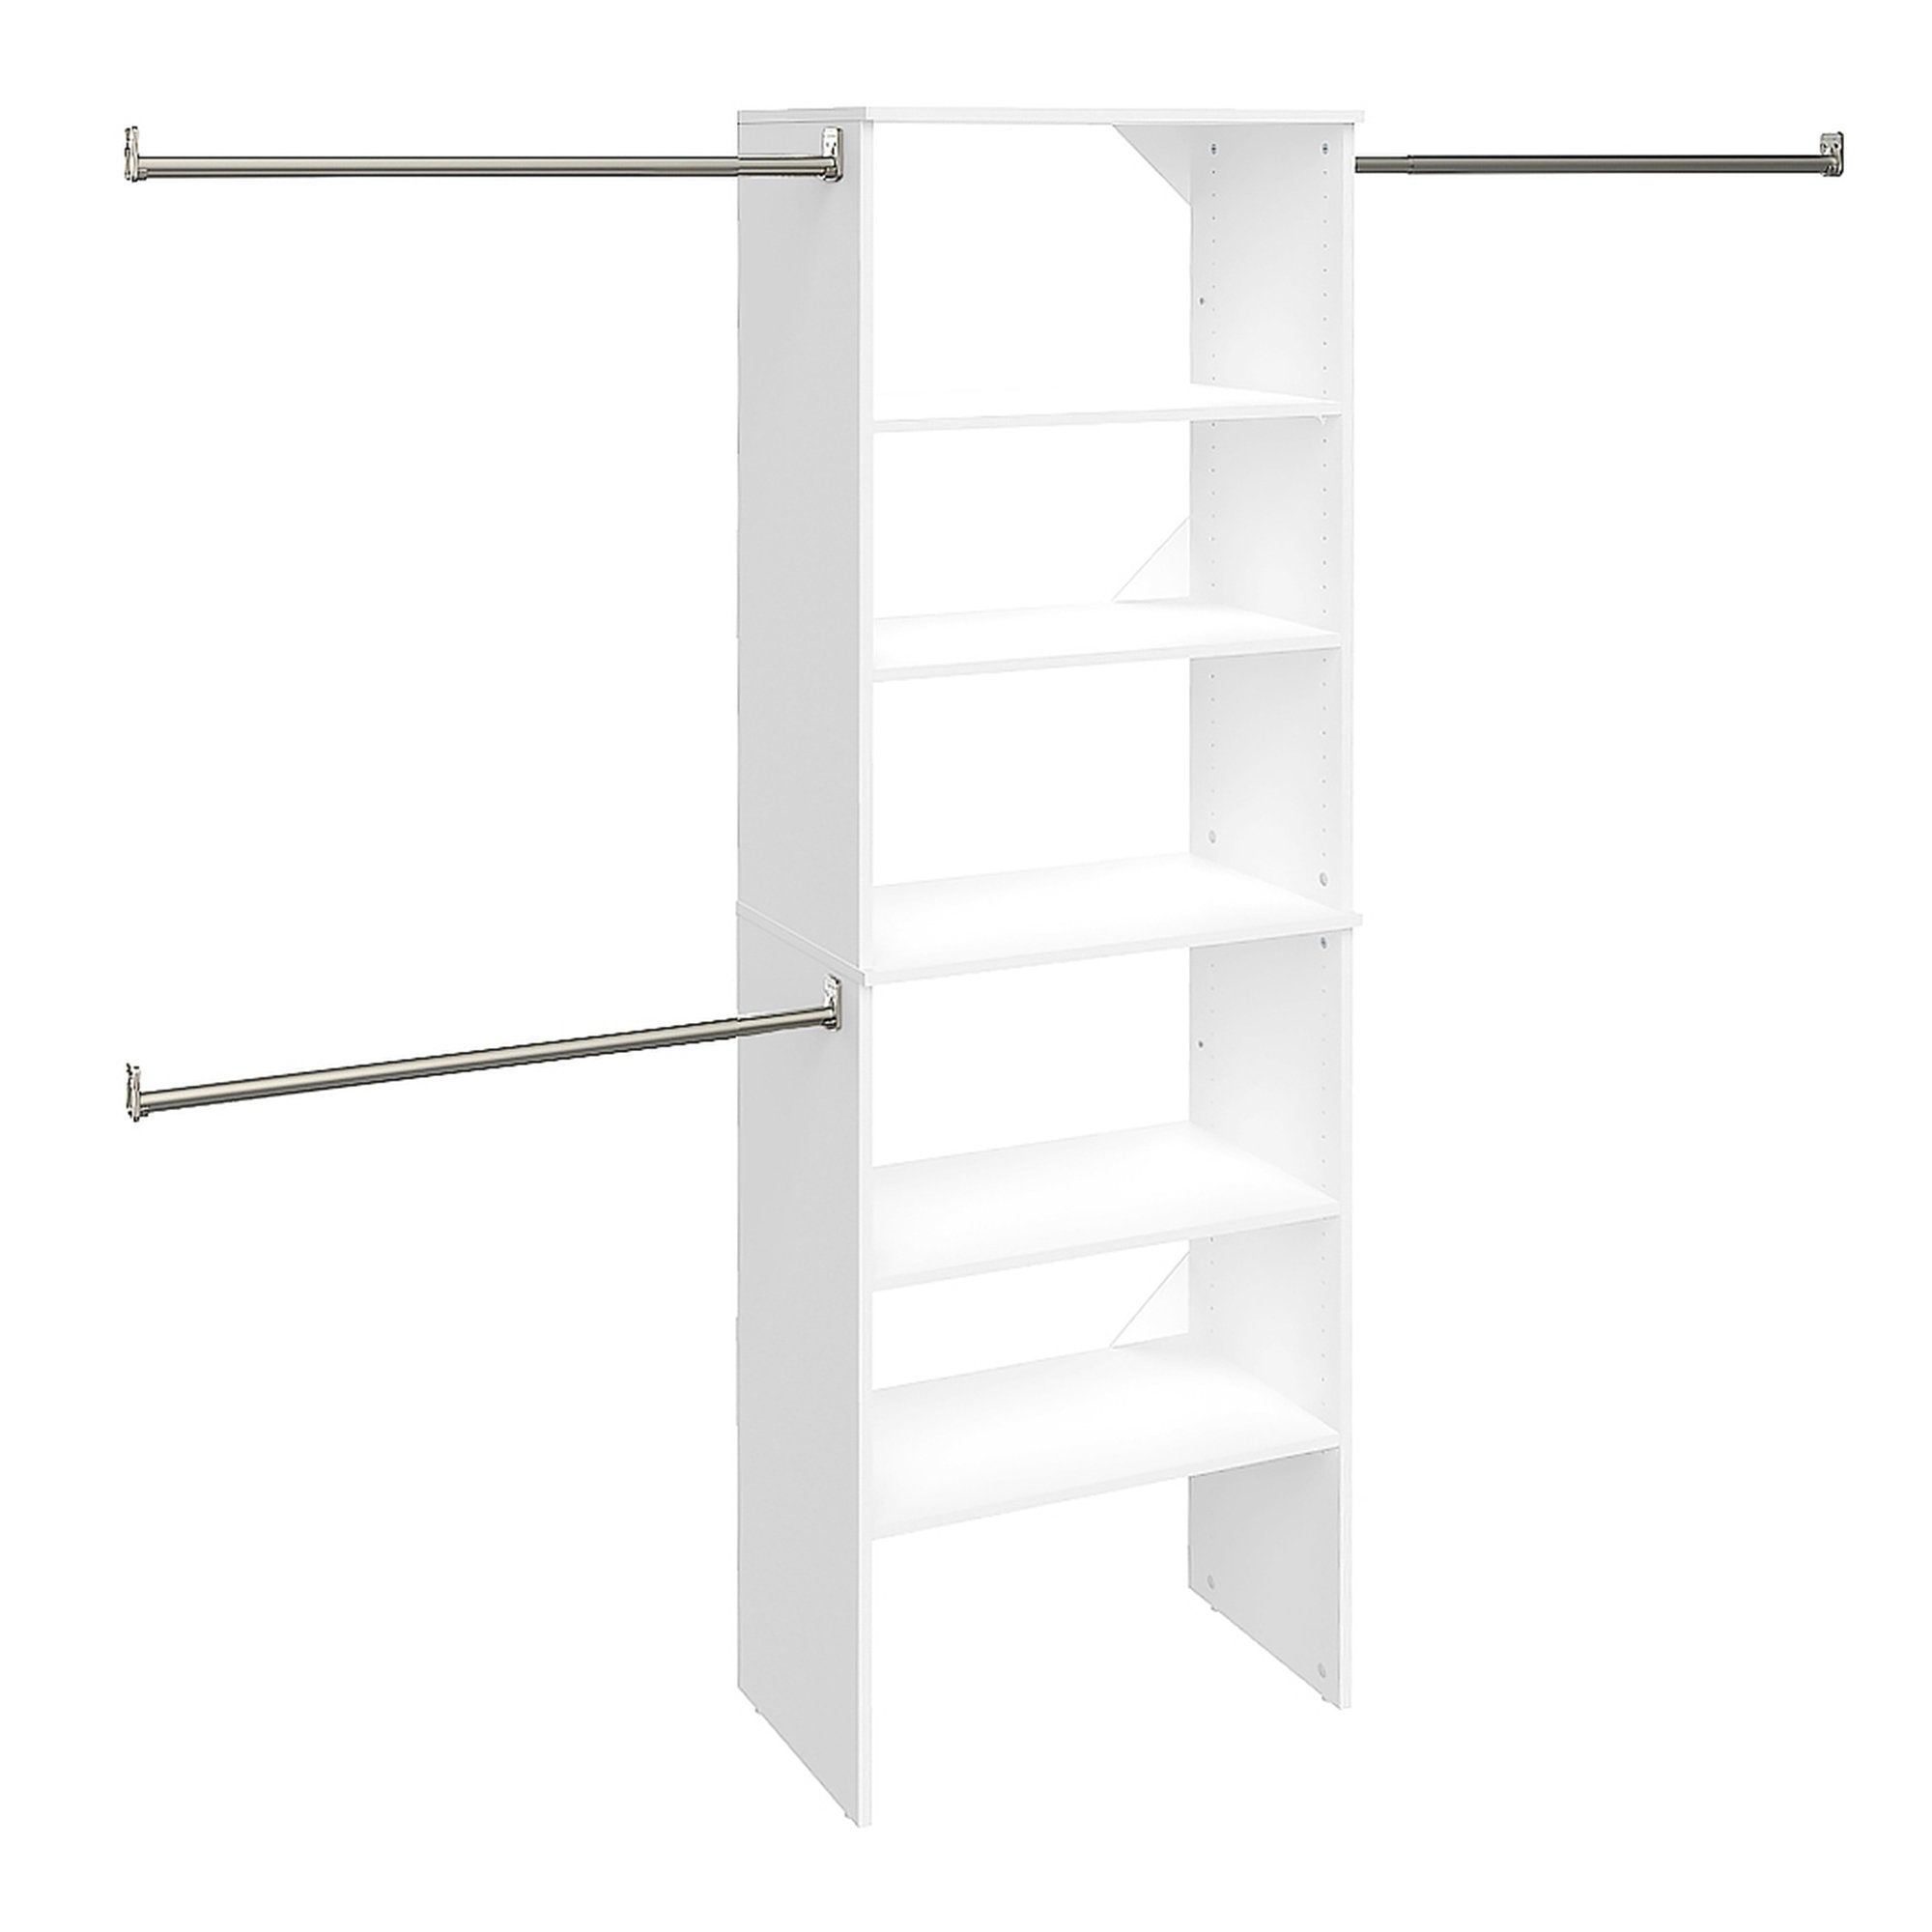 Get closetmaid 24869 suitesymphony 25 inch starter tower kit pure white